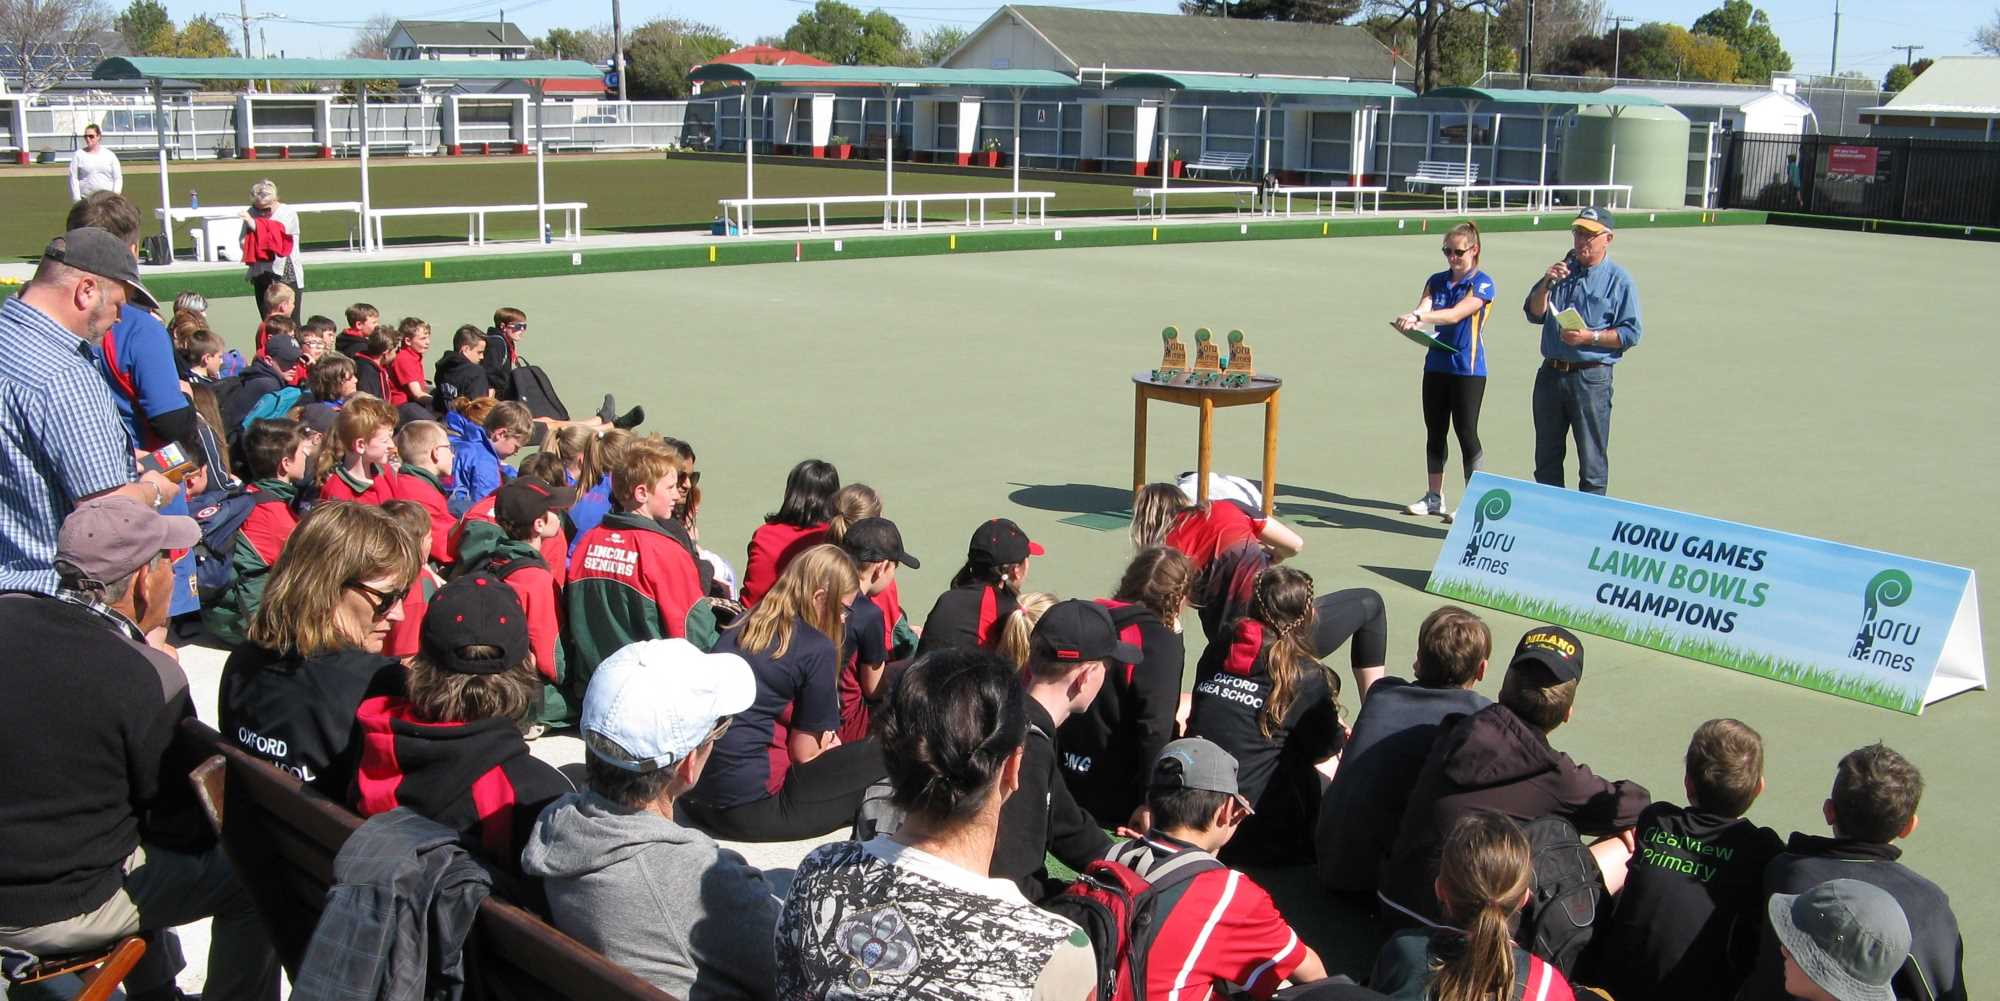 The Koru Games 2019 - The Award of Medals